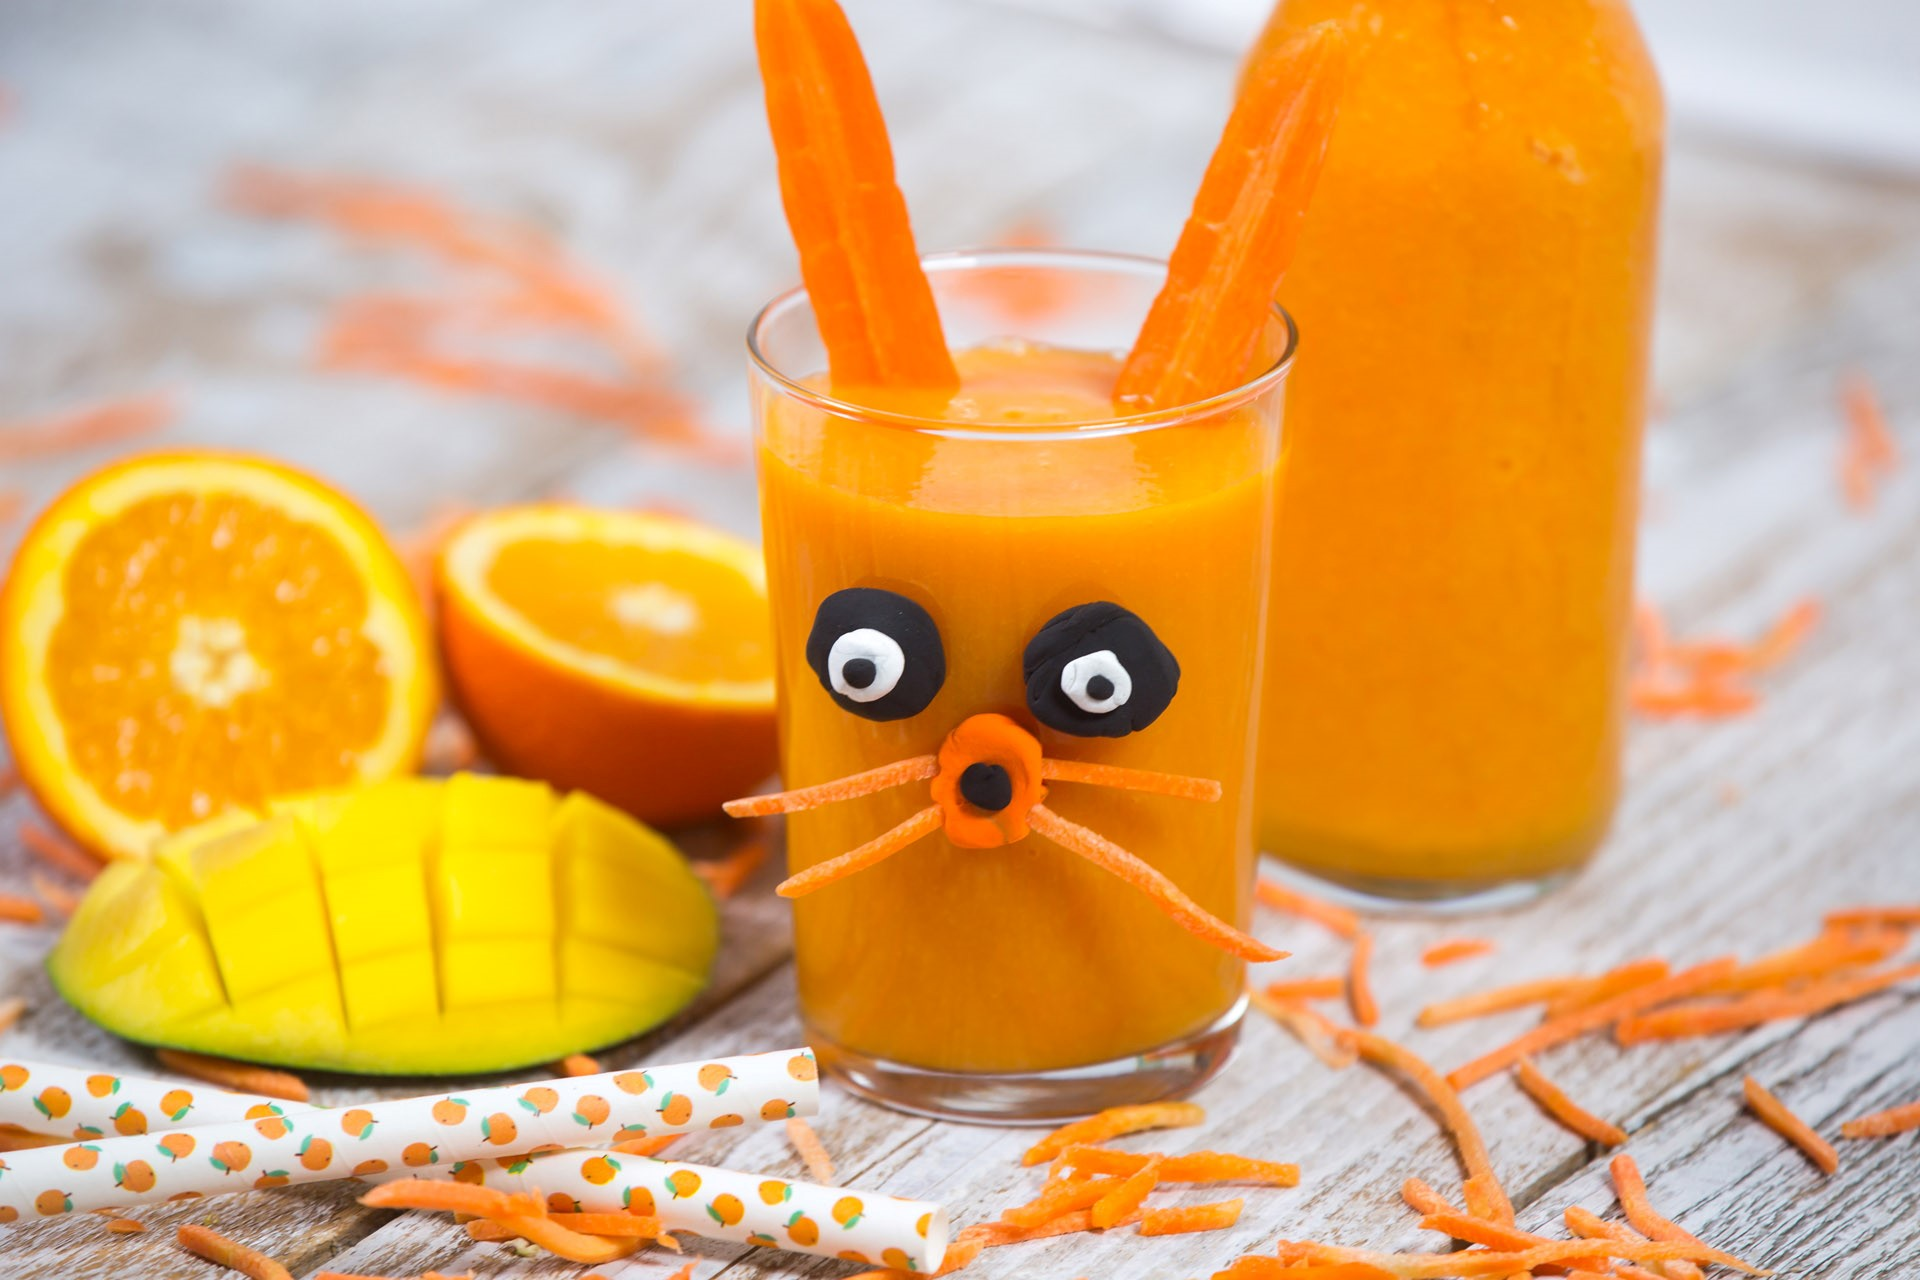 Mango and carrot smoothie